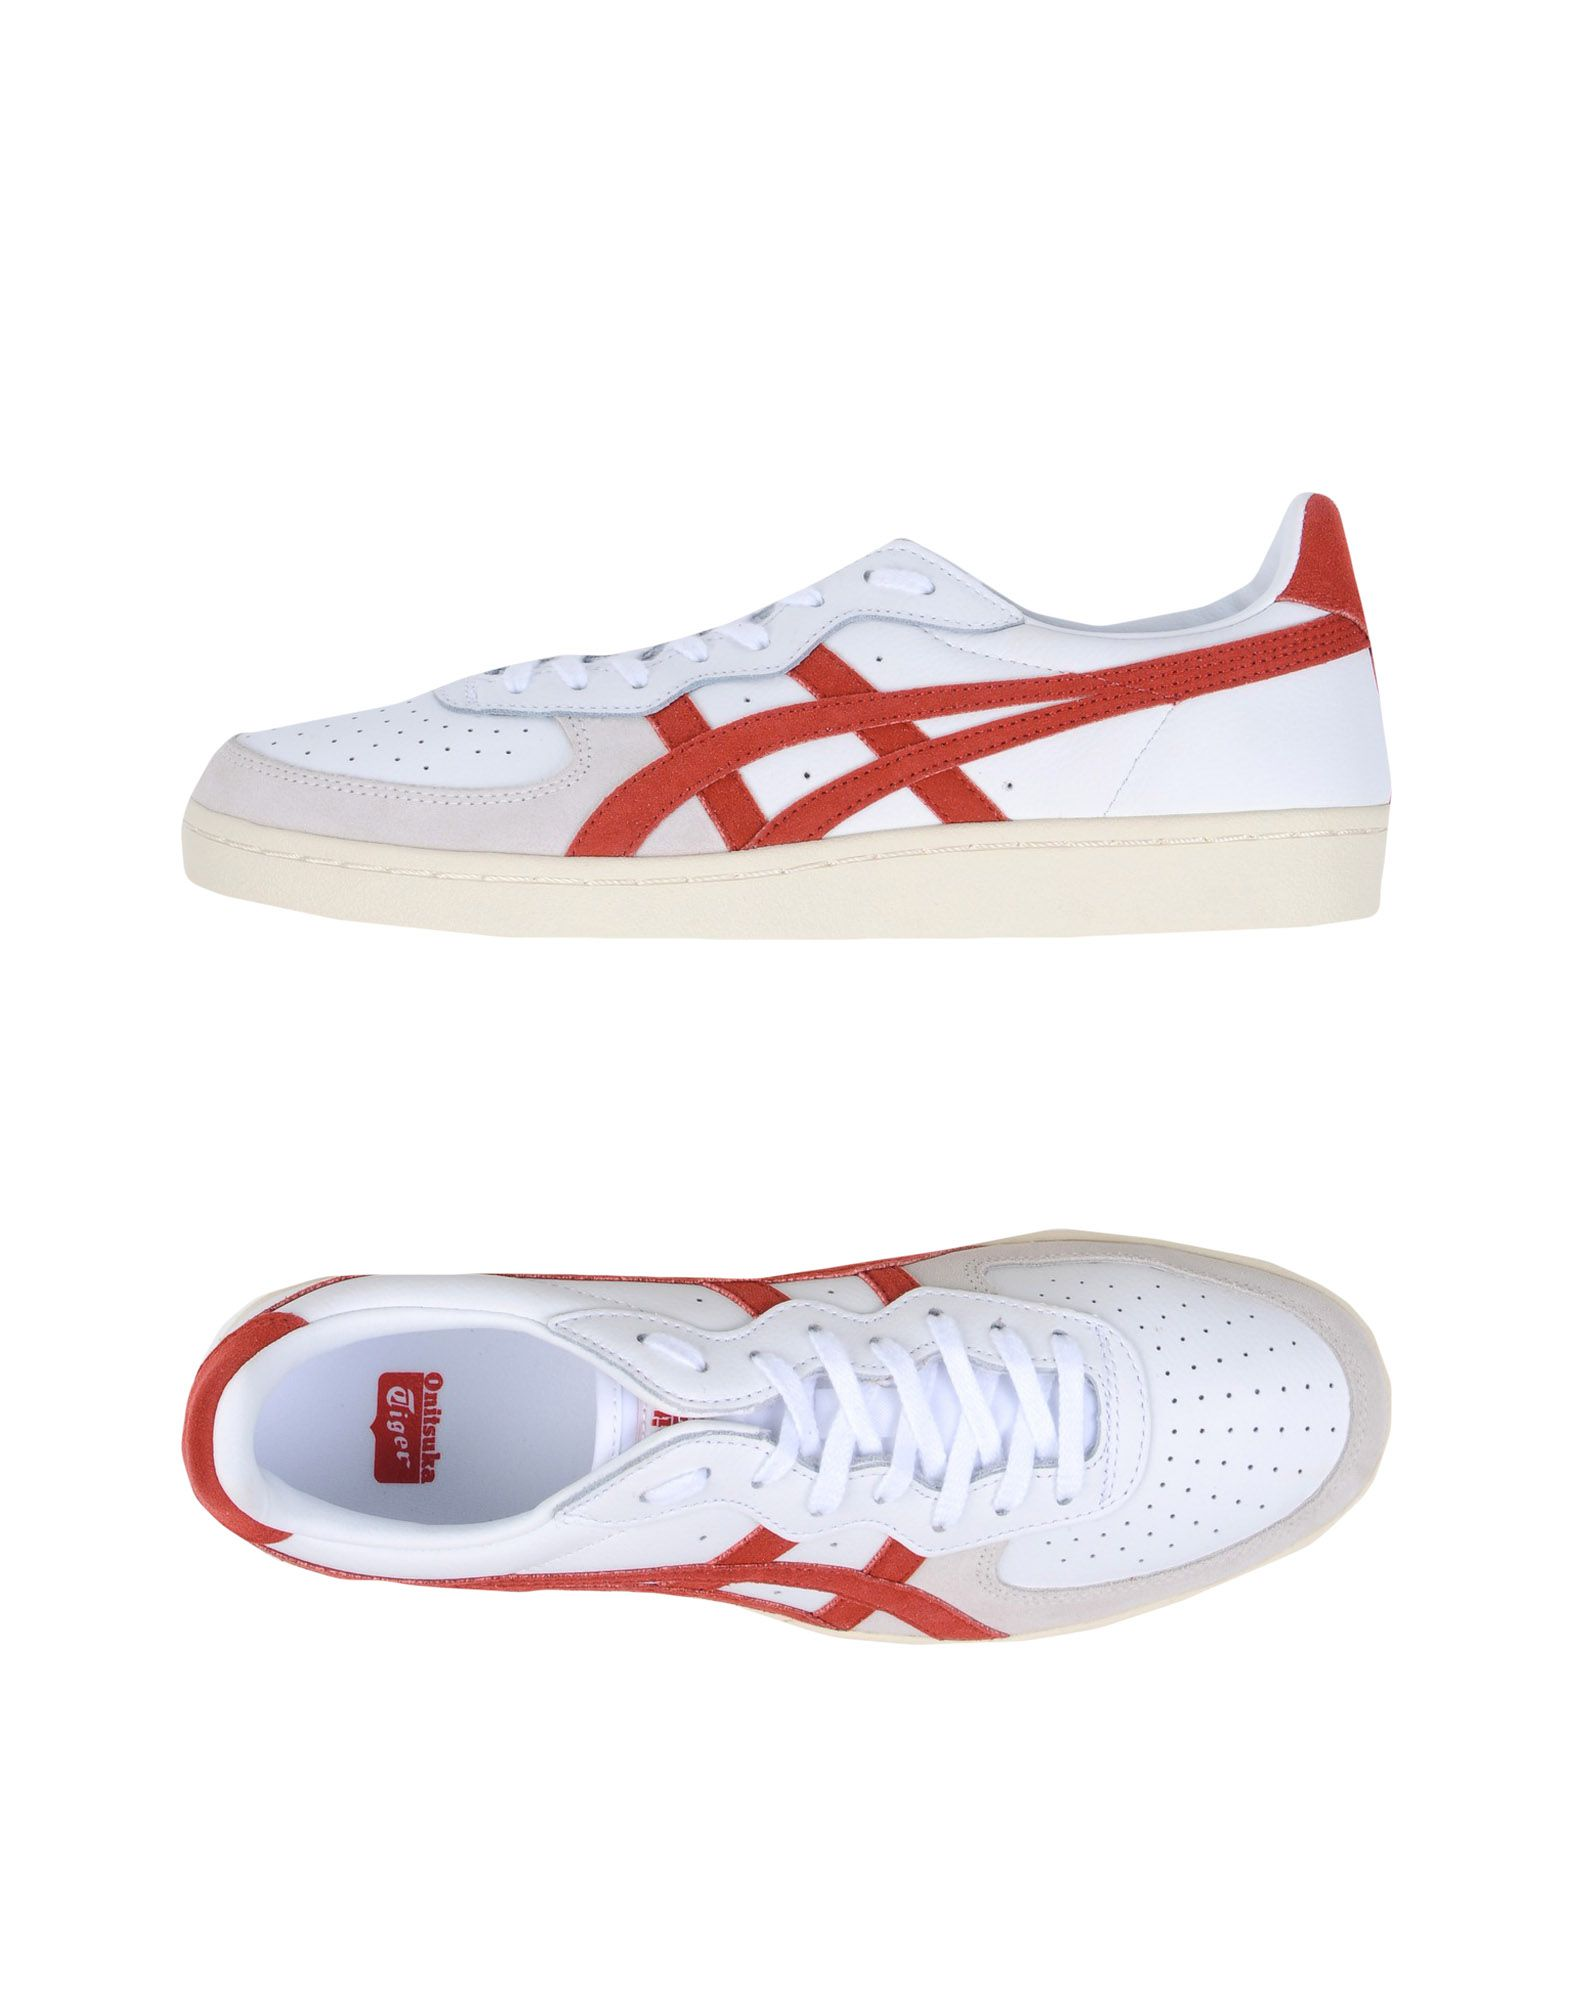 Sneakers Onitsuka Tiger Gsm - Homme - Sneakers Onitsuka Tiger  Blanc Dédouanement saisonnier